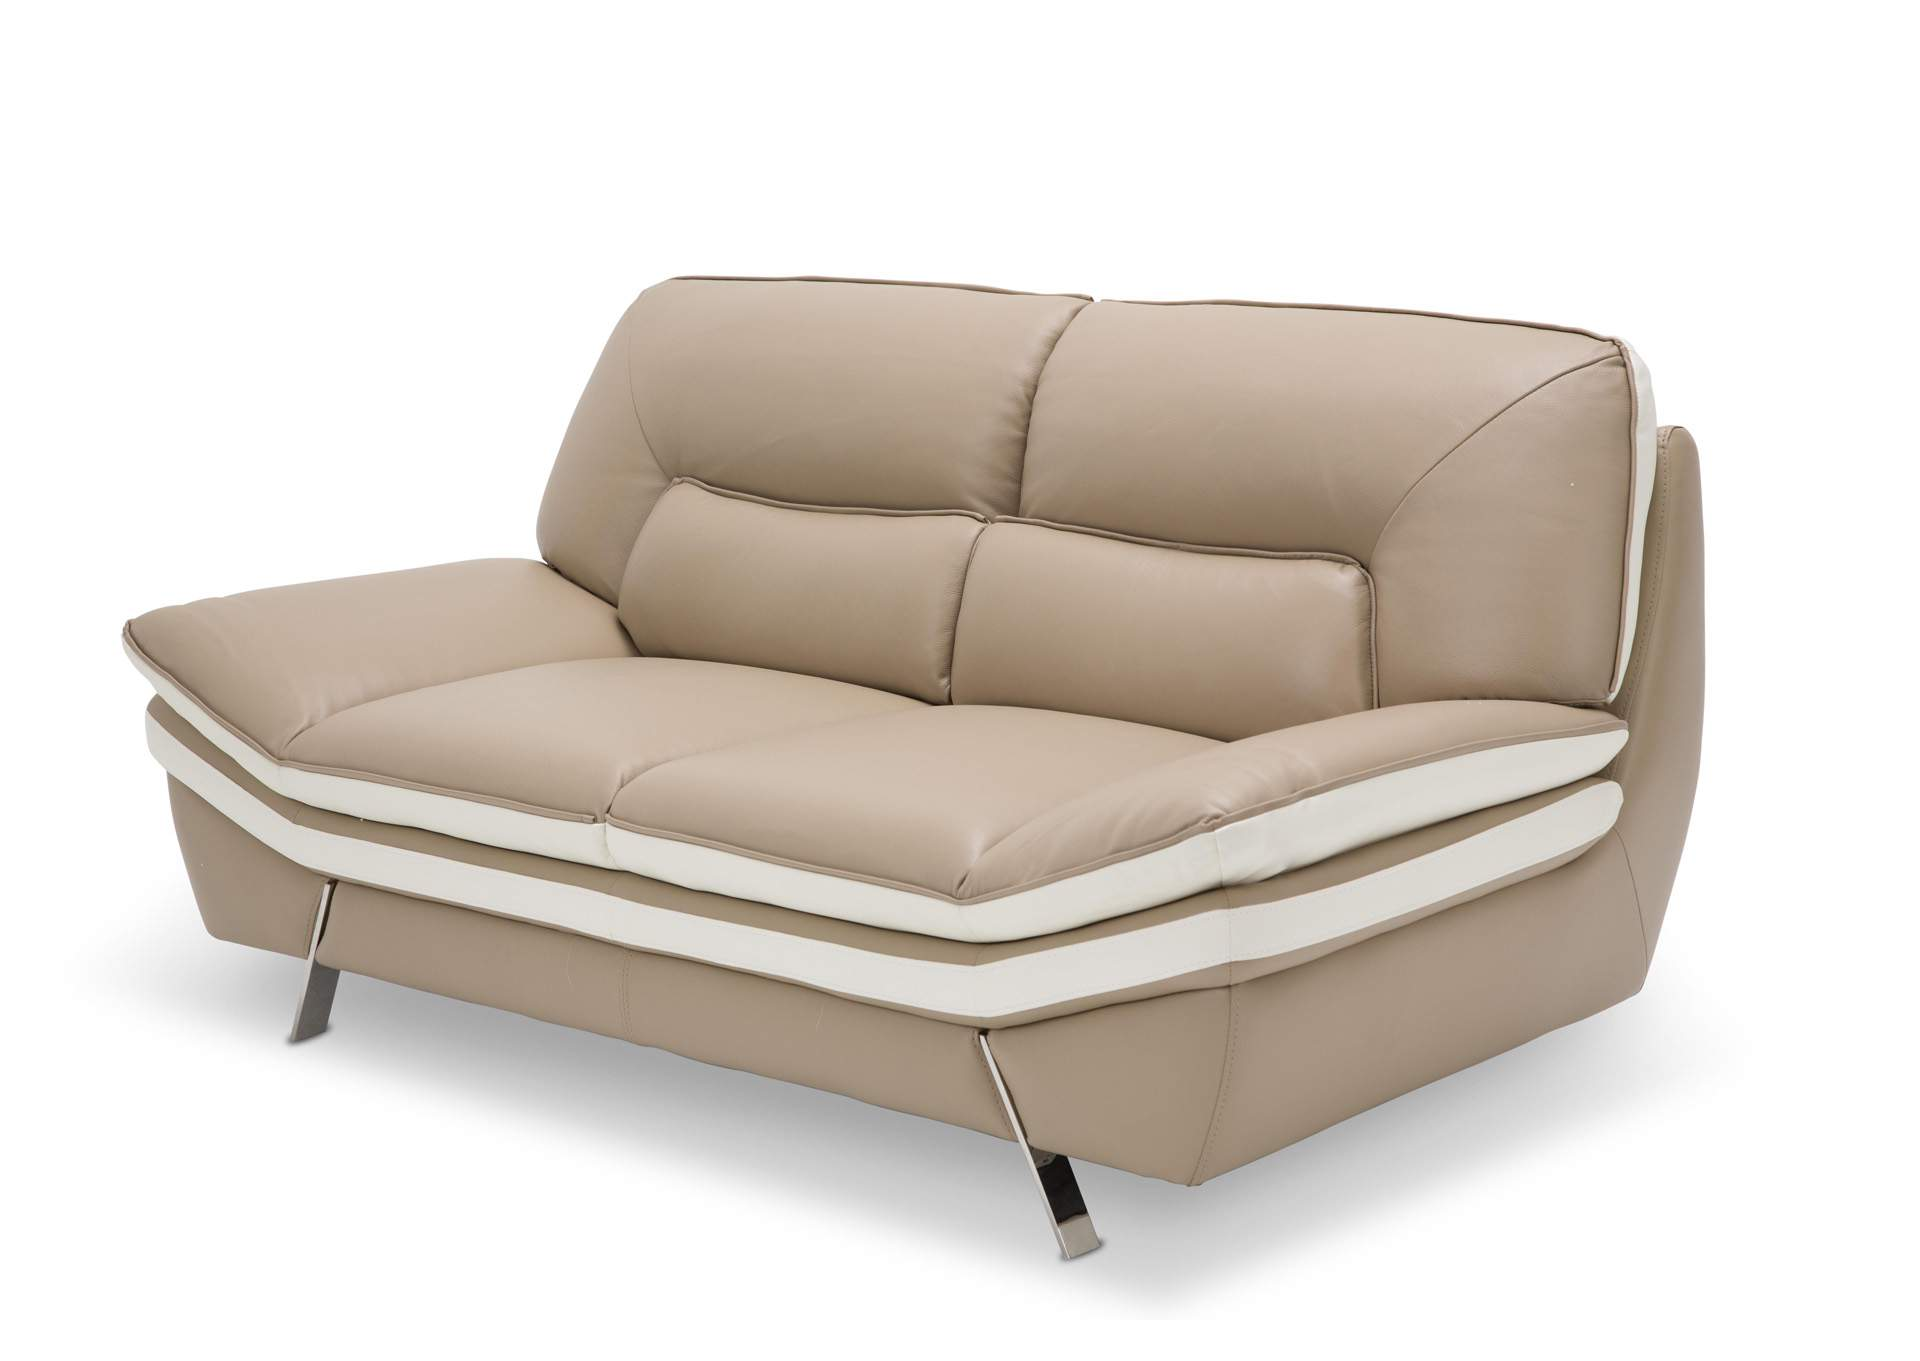 V Watts Furniture Carlin Taupe Leather Loveseat W Stainless Steel Legs